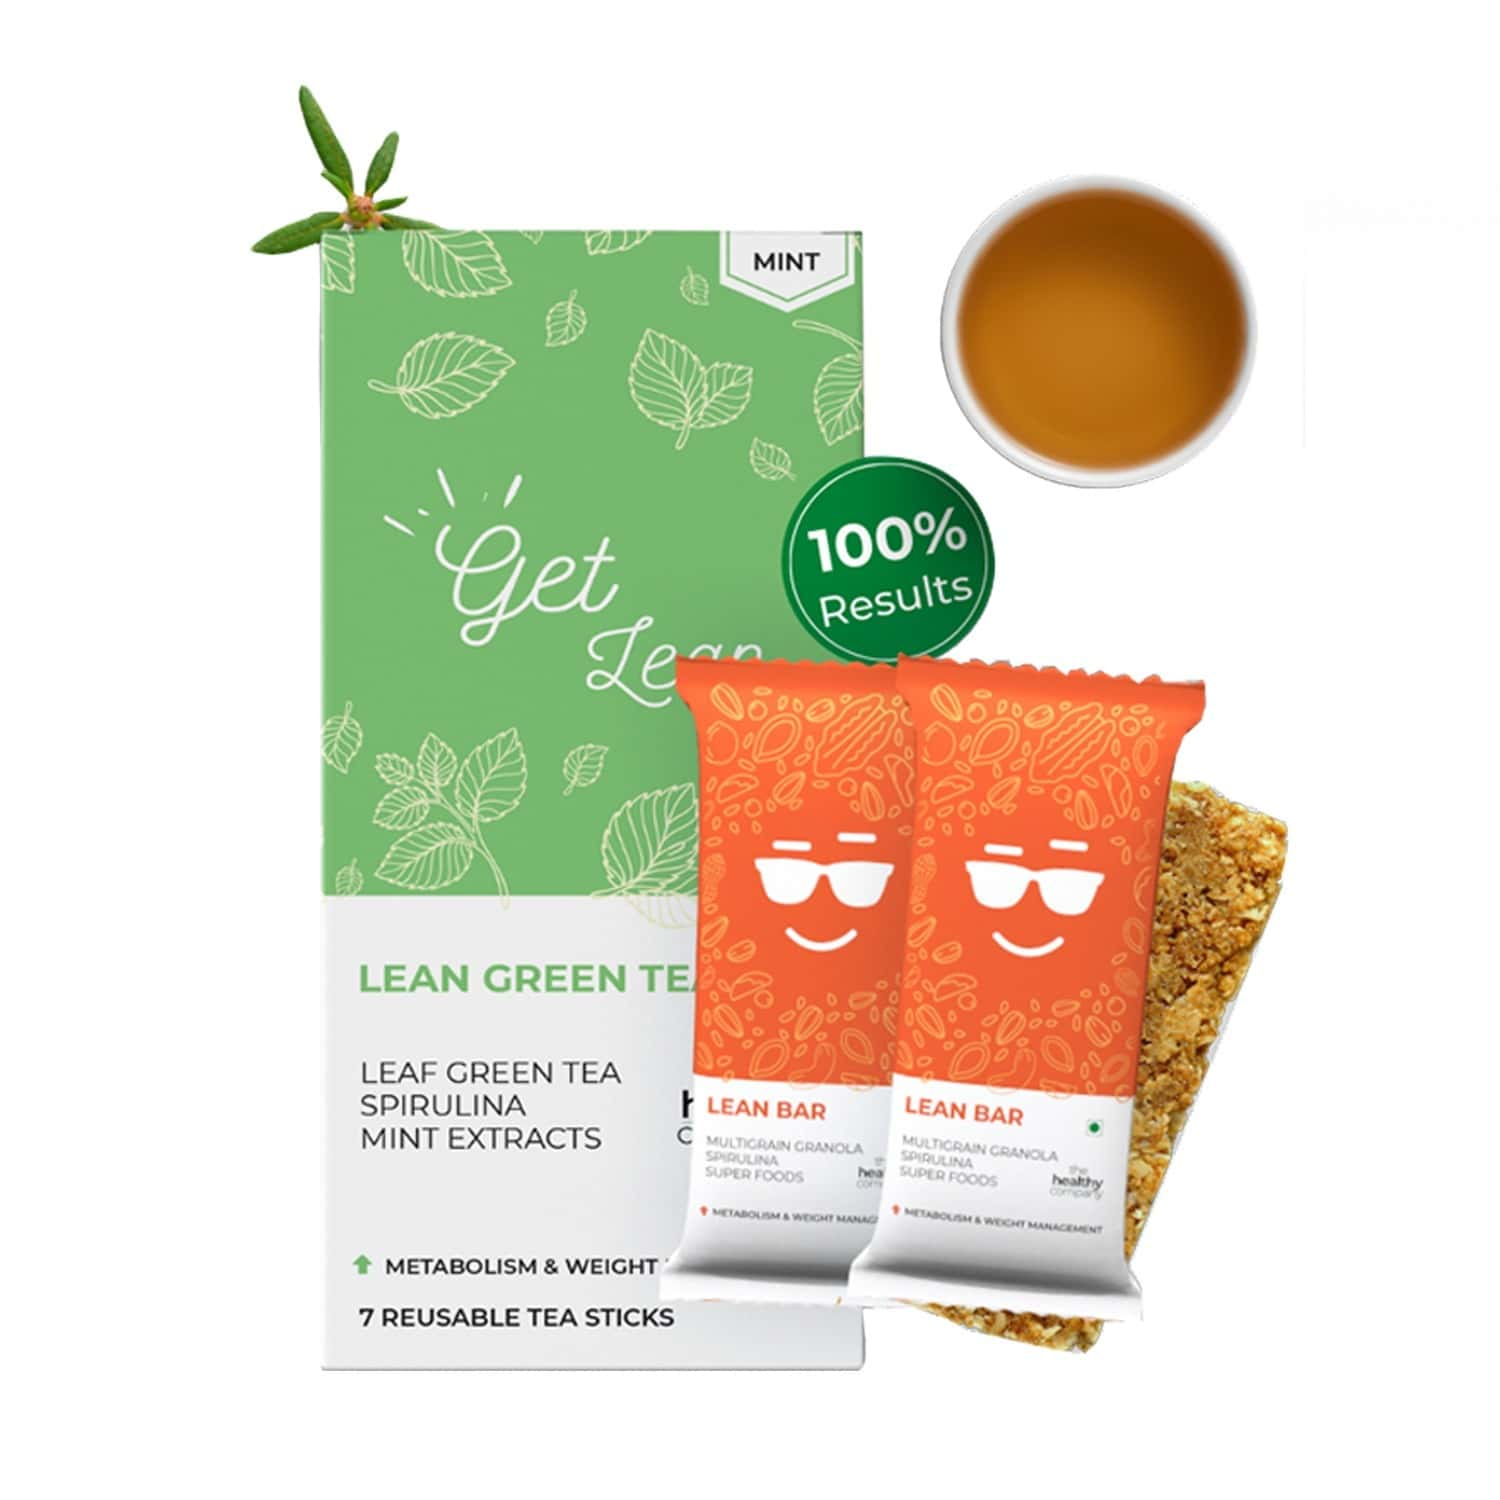 The Healthy Company One Month Weight Loss - 28 Lean Bar + 28 Peach Flavoured Natural Green Tea Sticks -diabetes Pcod Thyroid & Keto - Men & Women